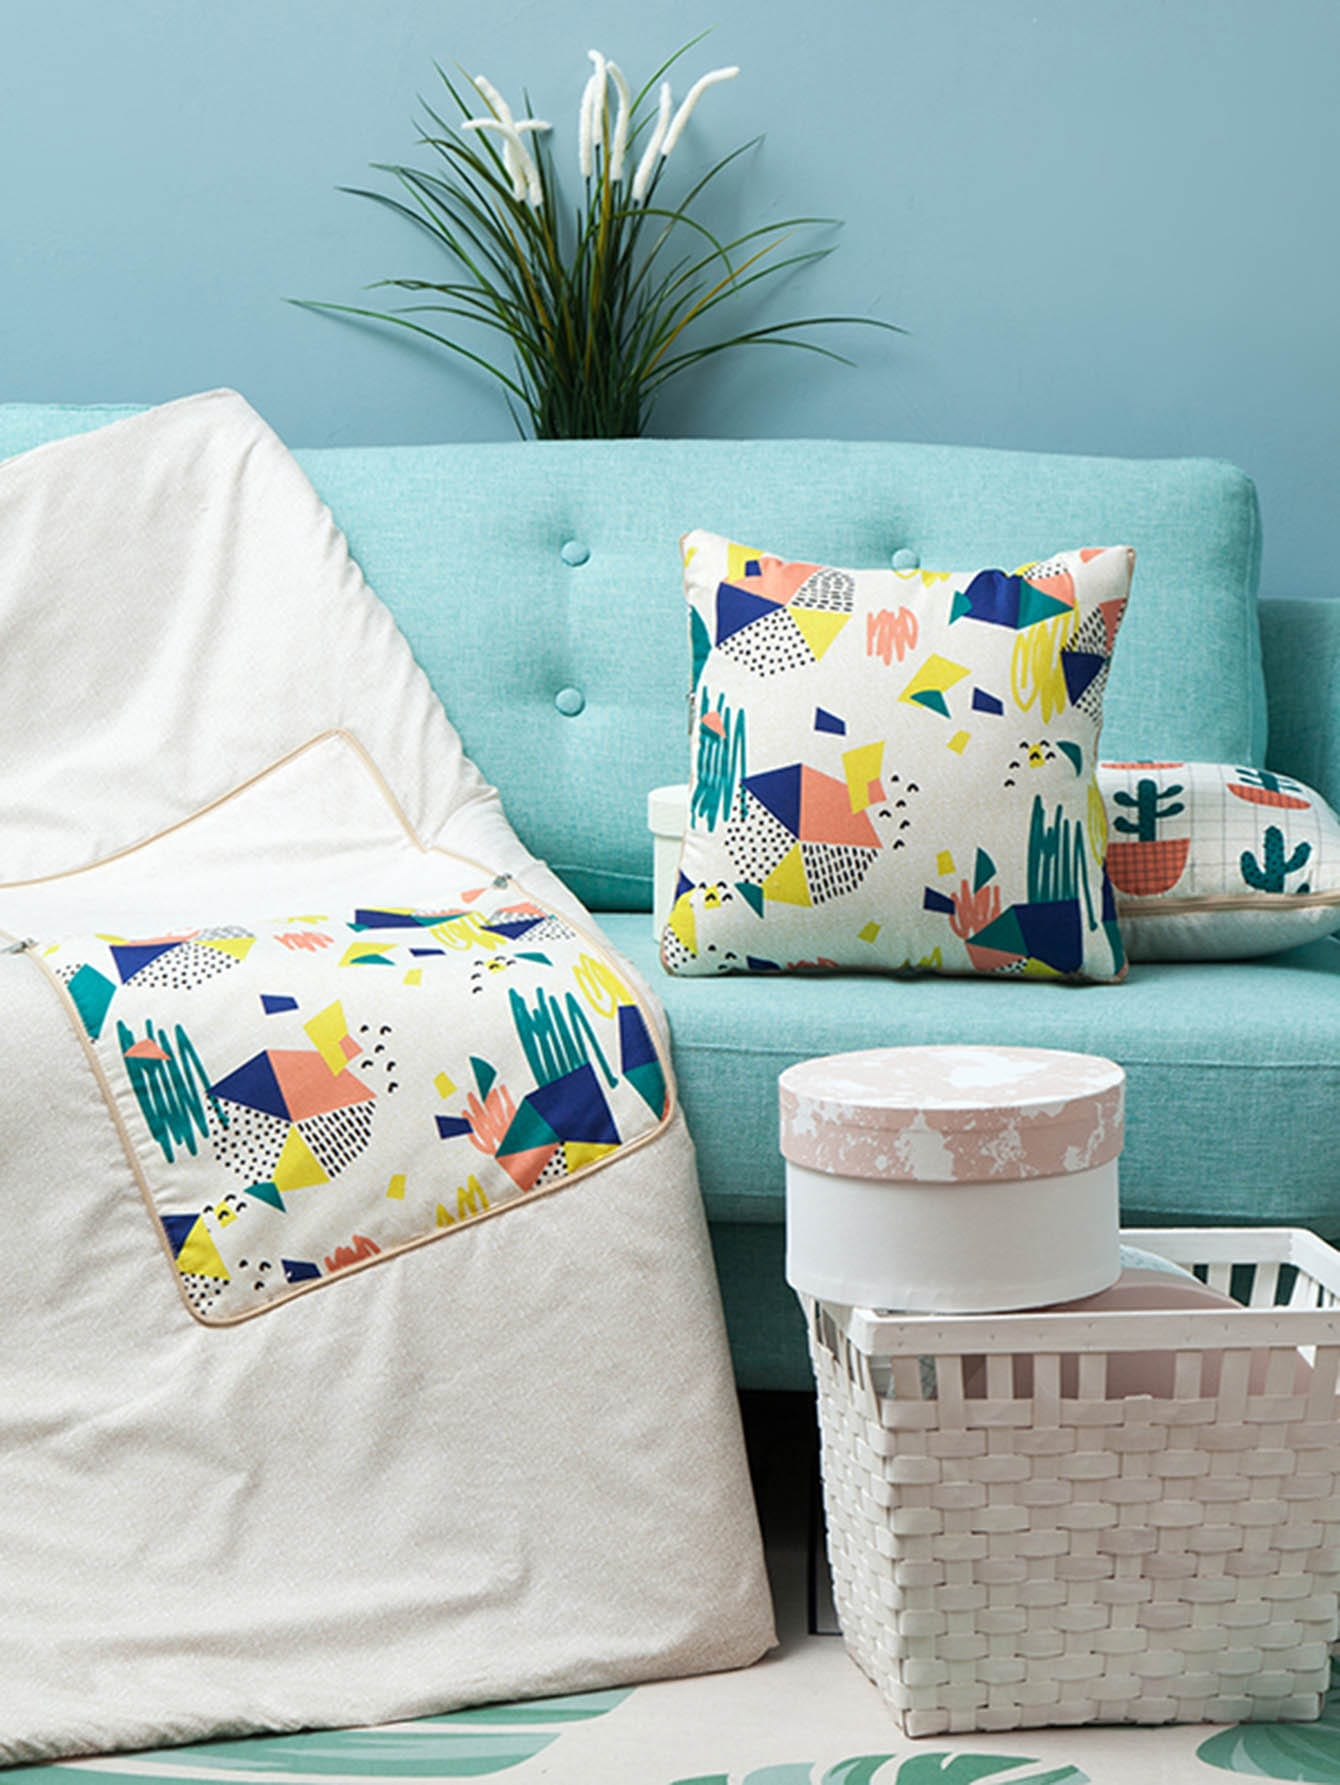 Geometric Print 2 in 1 Blanket Cushion 1 PC